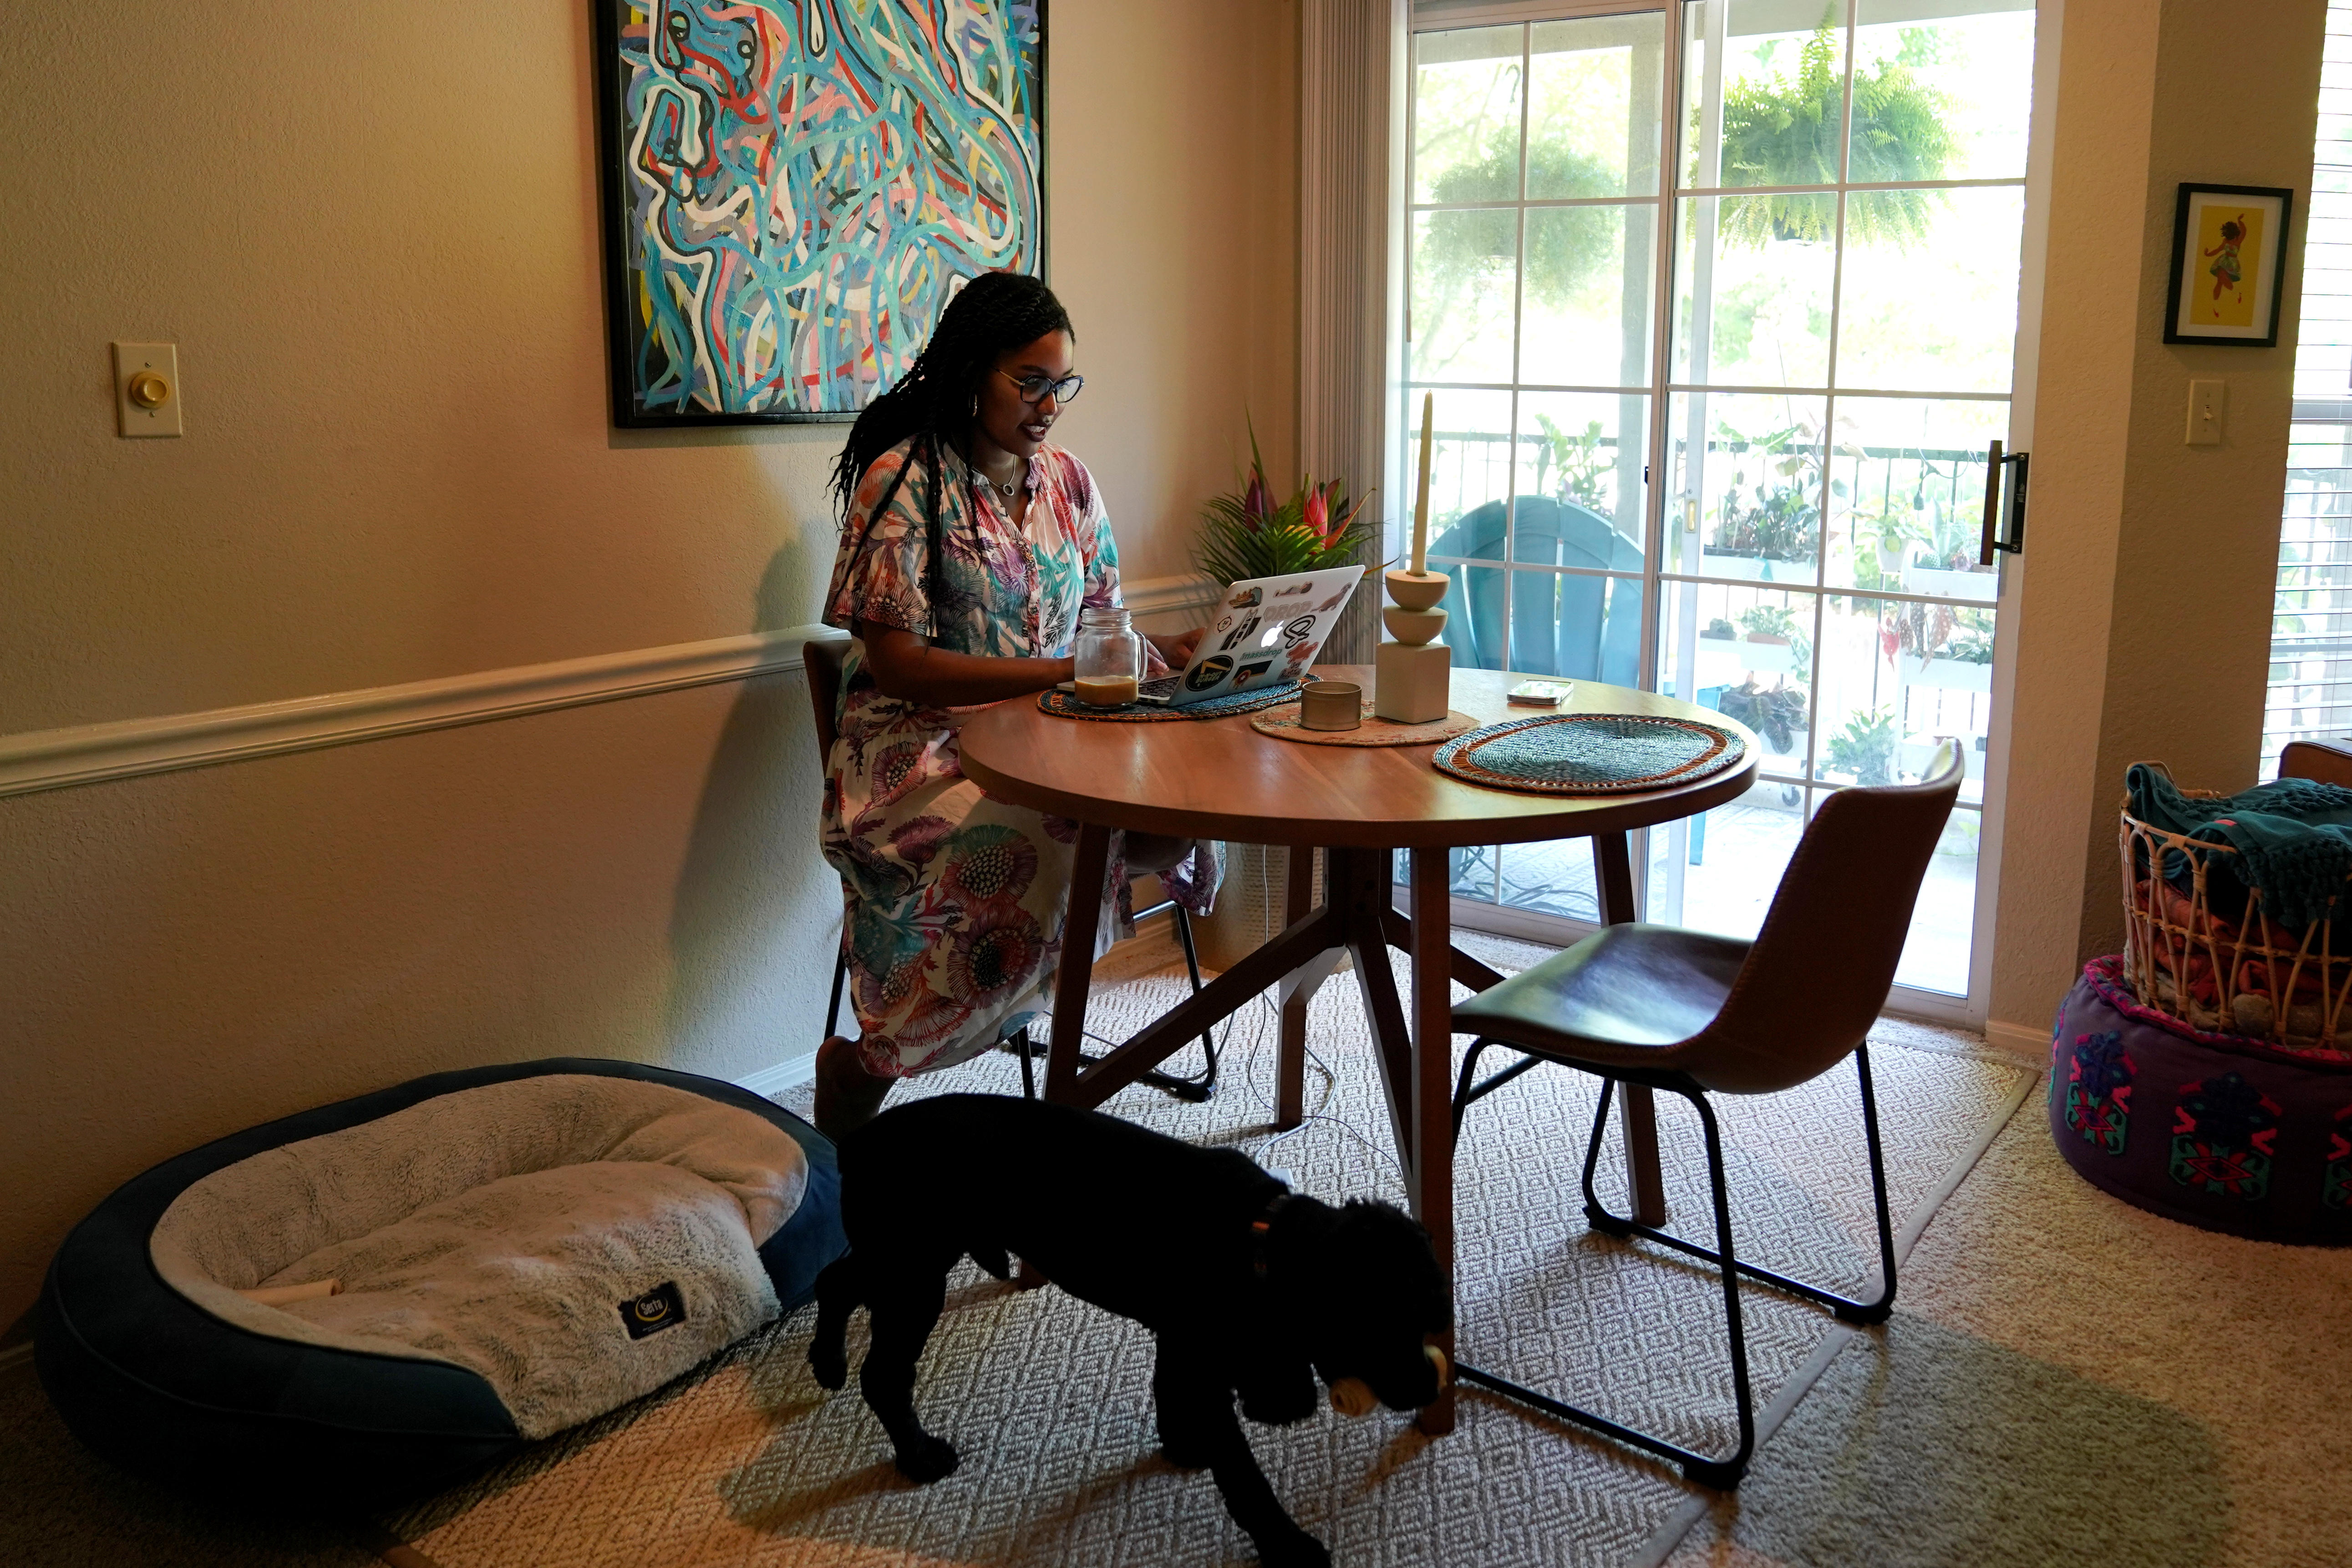 Jaleesa Garland, a marketing manager at an e-commerce startup who relocated from the Bay Area at the start of the COVID-19 pandemic, works in her apartment in Tulsa, Oklahoma, U.S., July 9, 2021. REUTERS/Nick Oxford